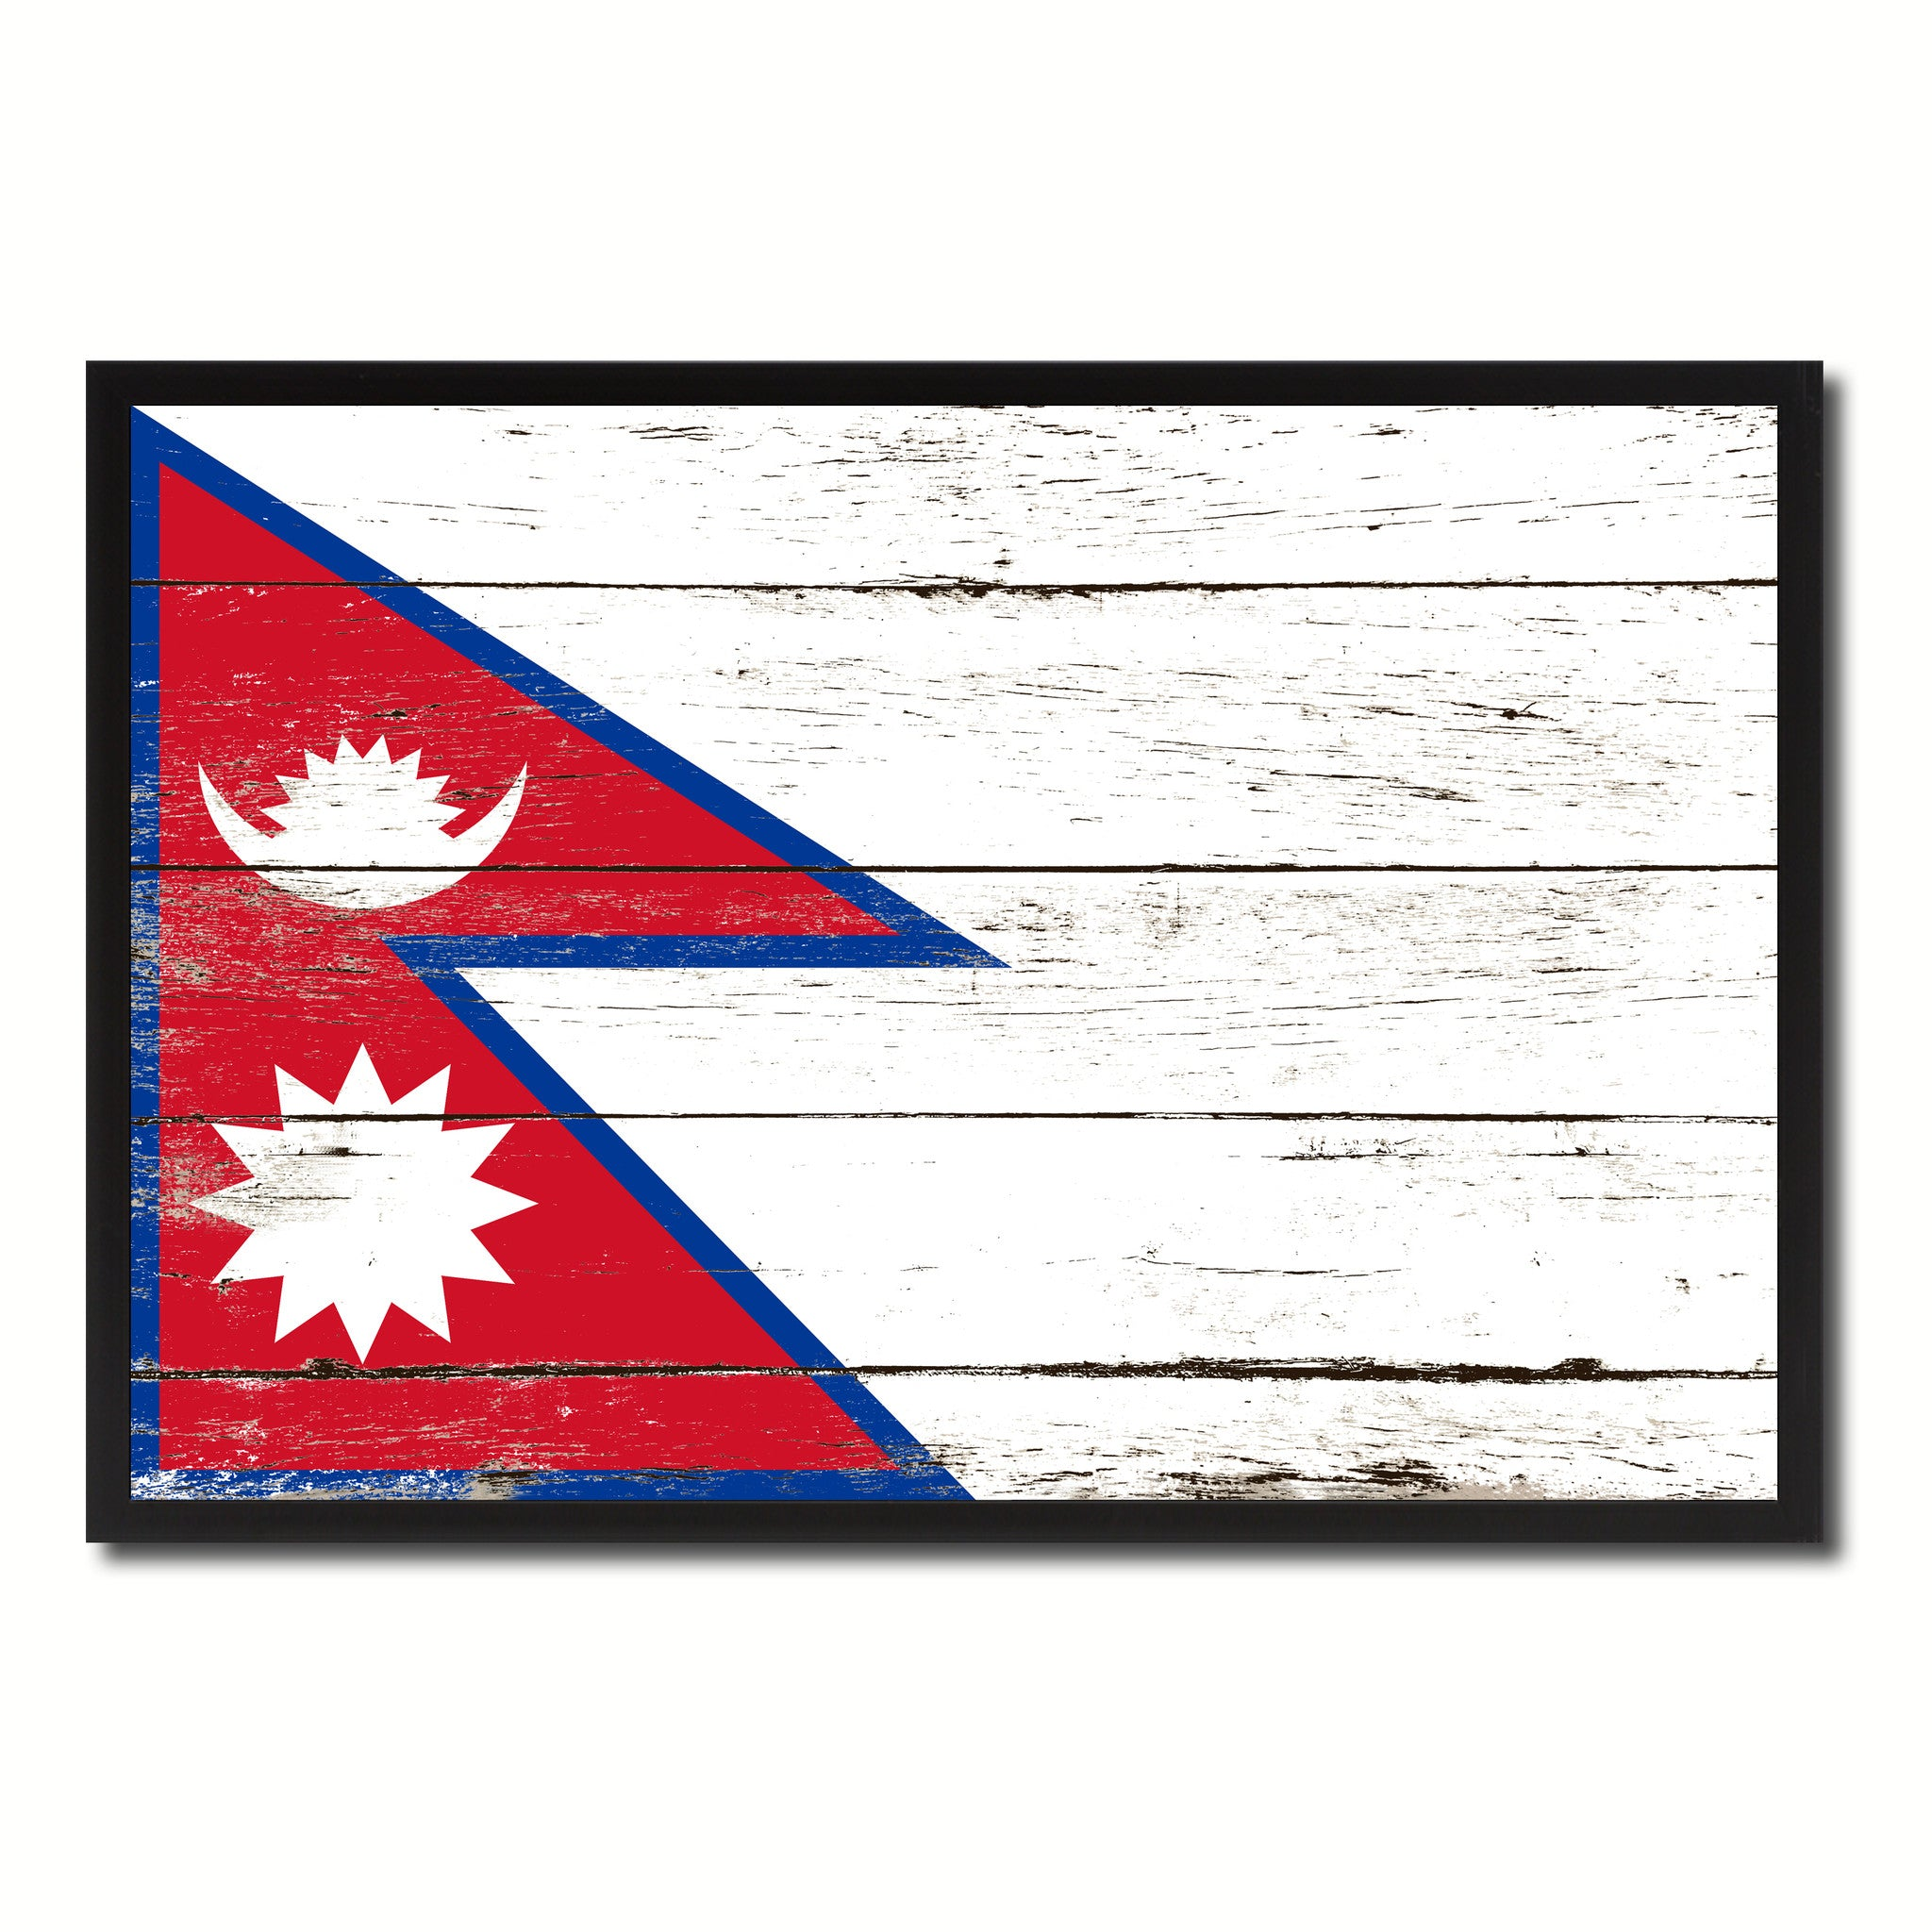 Nepal Country National Flag Vintage Canvas Print with Picture Frame Home Decor Wall Art Collection Gift Ideas